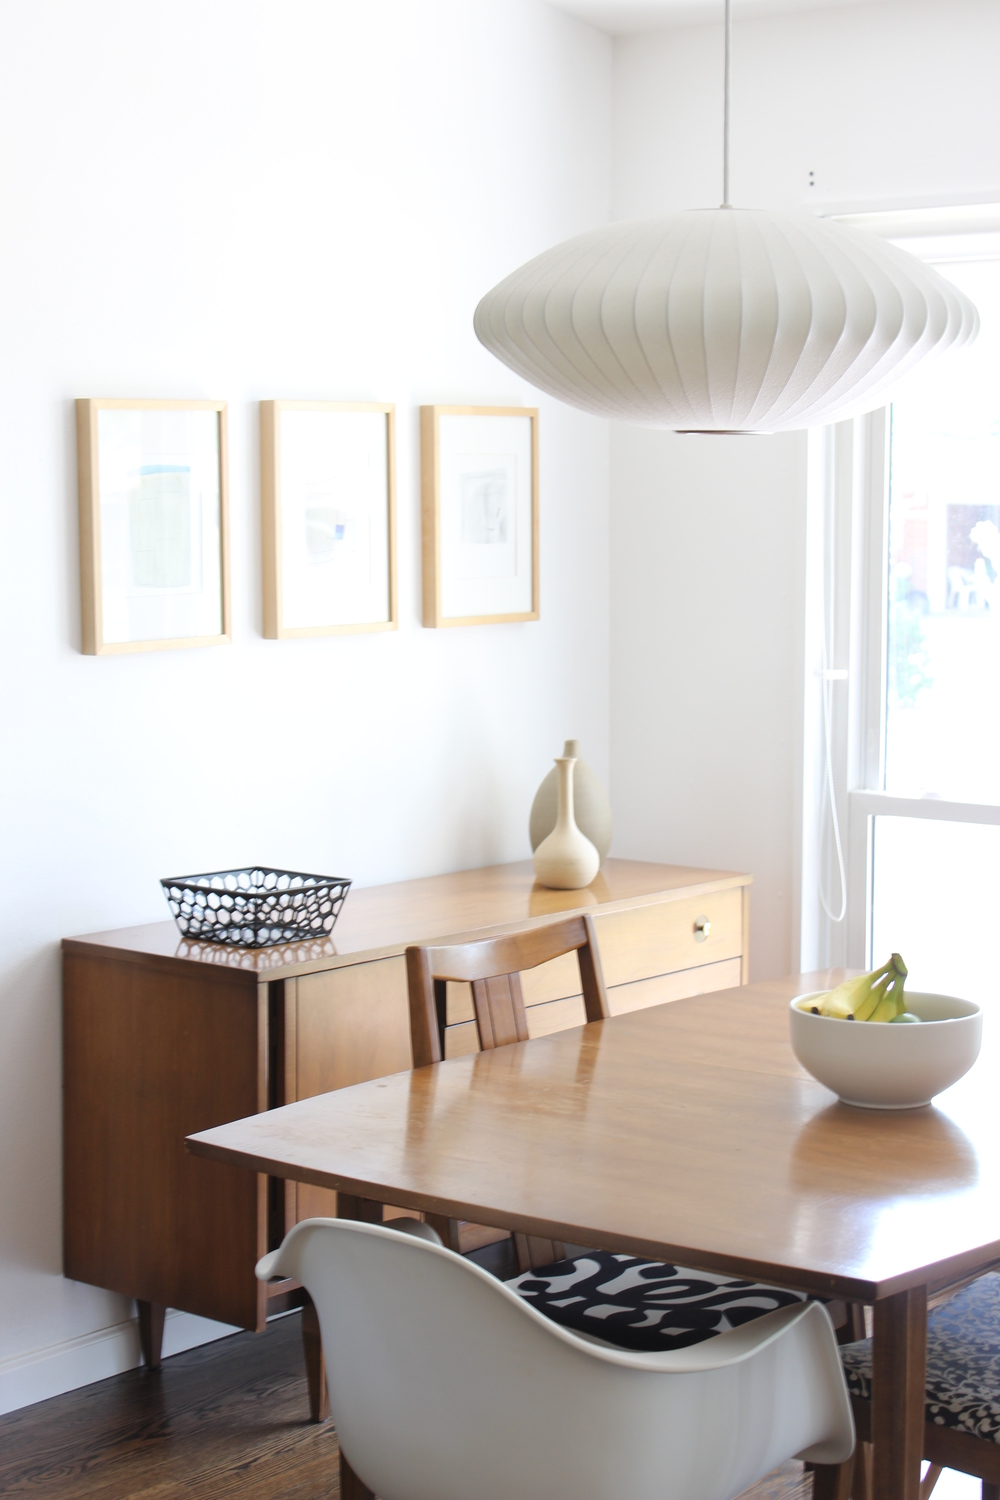 Our house midcentury modern in st louis part two for Mid century modern dining rooms